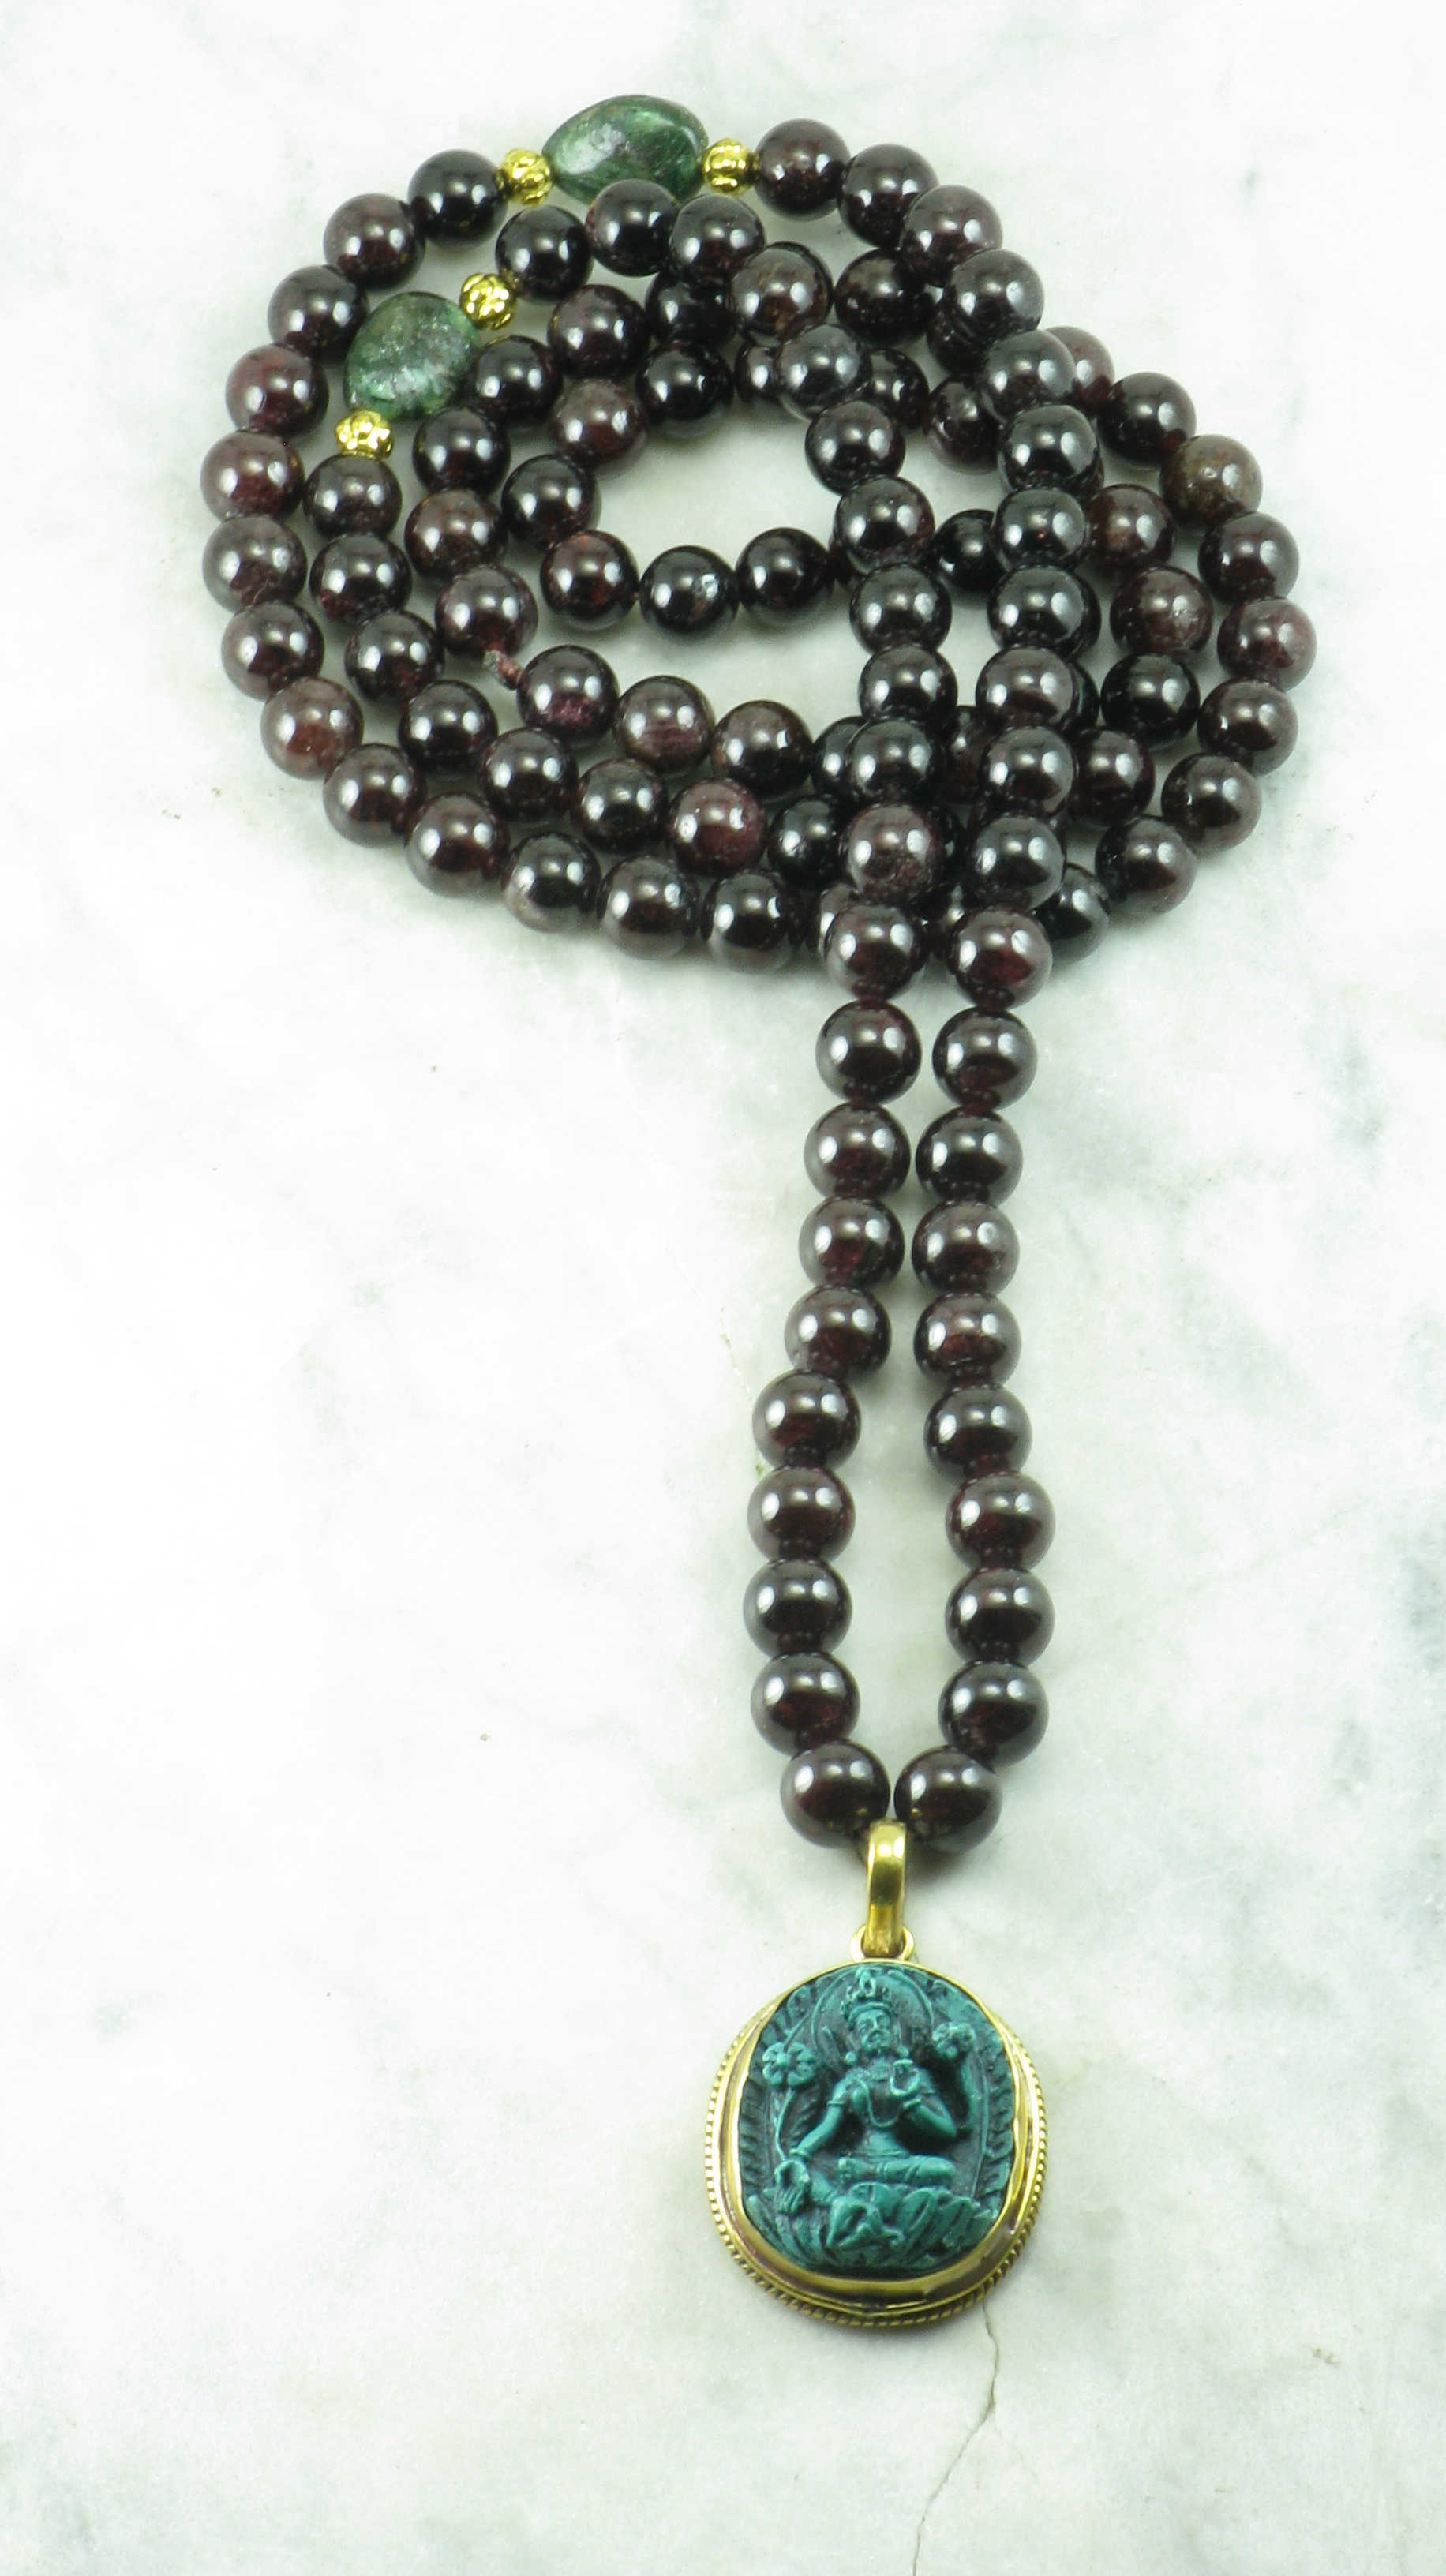 buddhist wikiwand beads en male mala hand in prayer nun